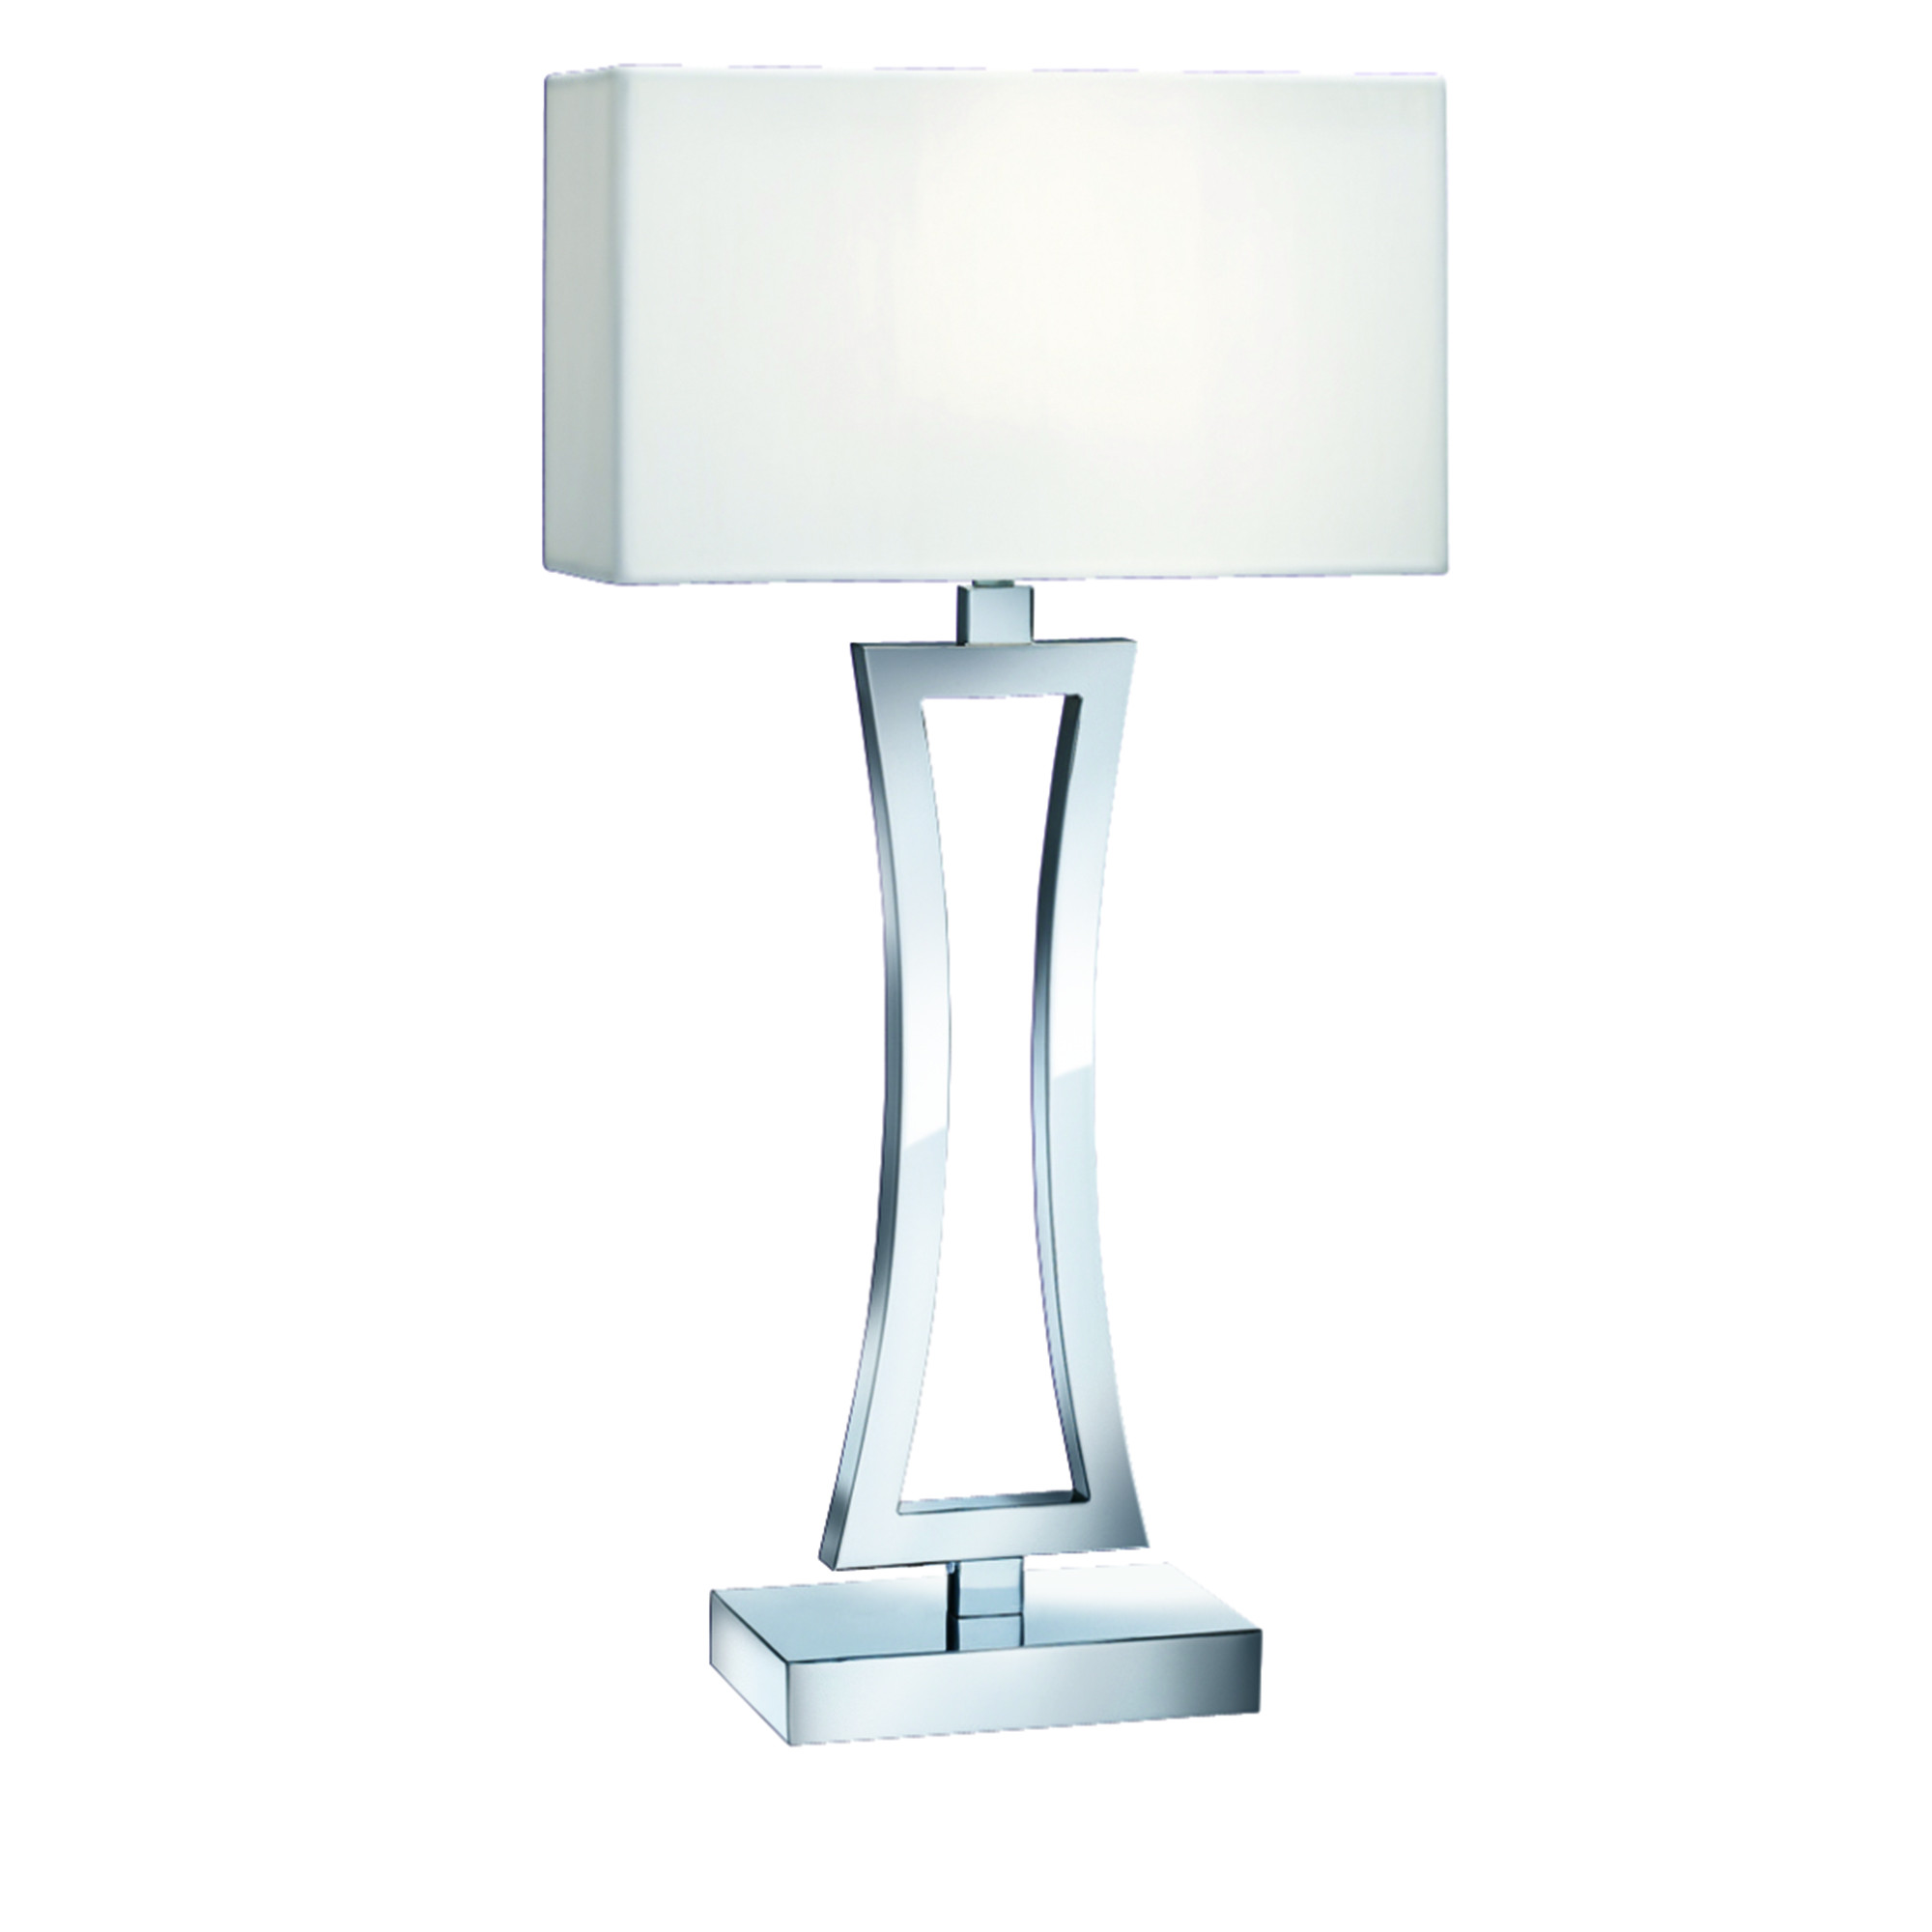 Satin Silver Curved Rectangular Table Lamp With White